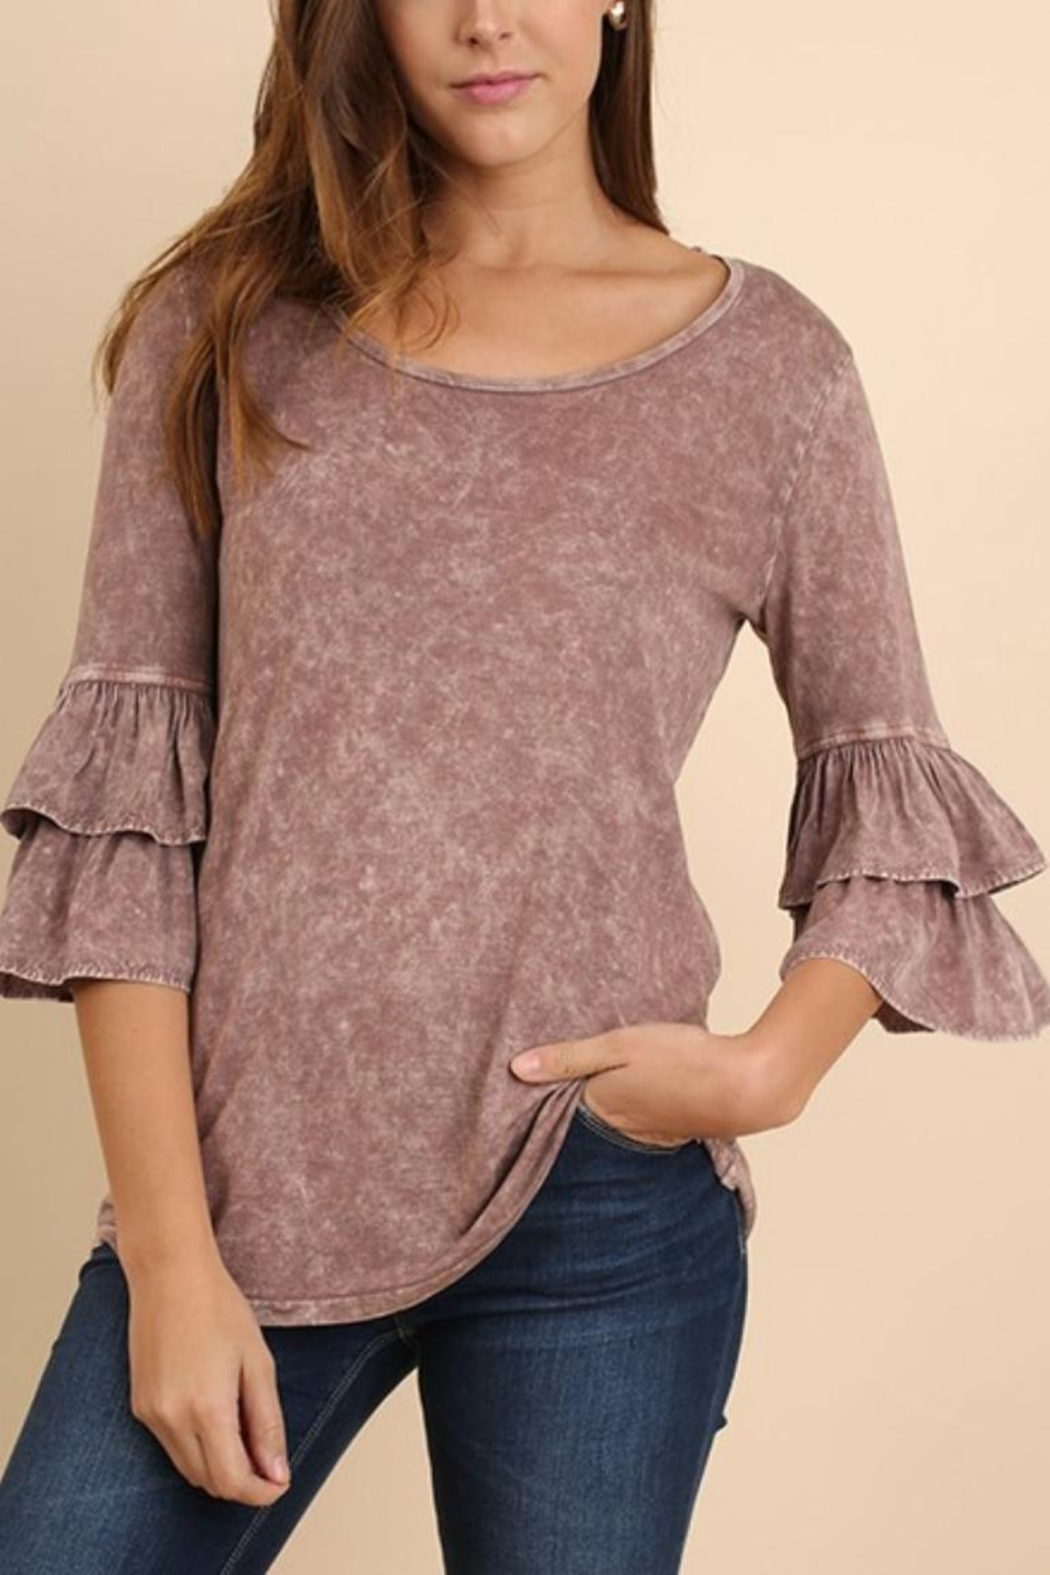 Umgee USA Mineral-Washed Ruffle-Sleeved Top - Front Cropped Image